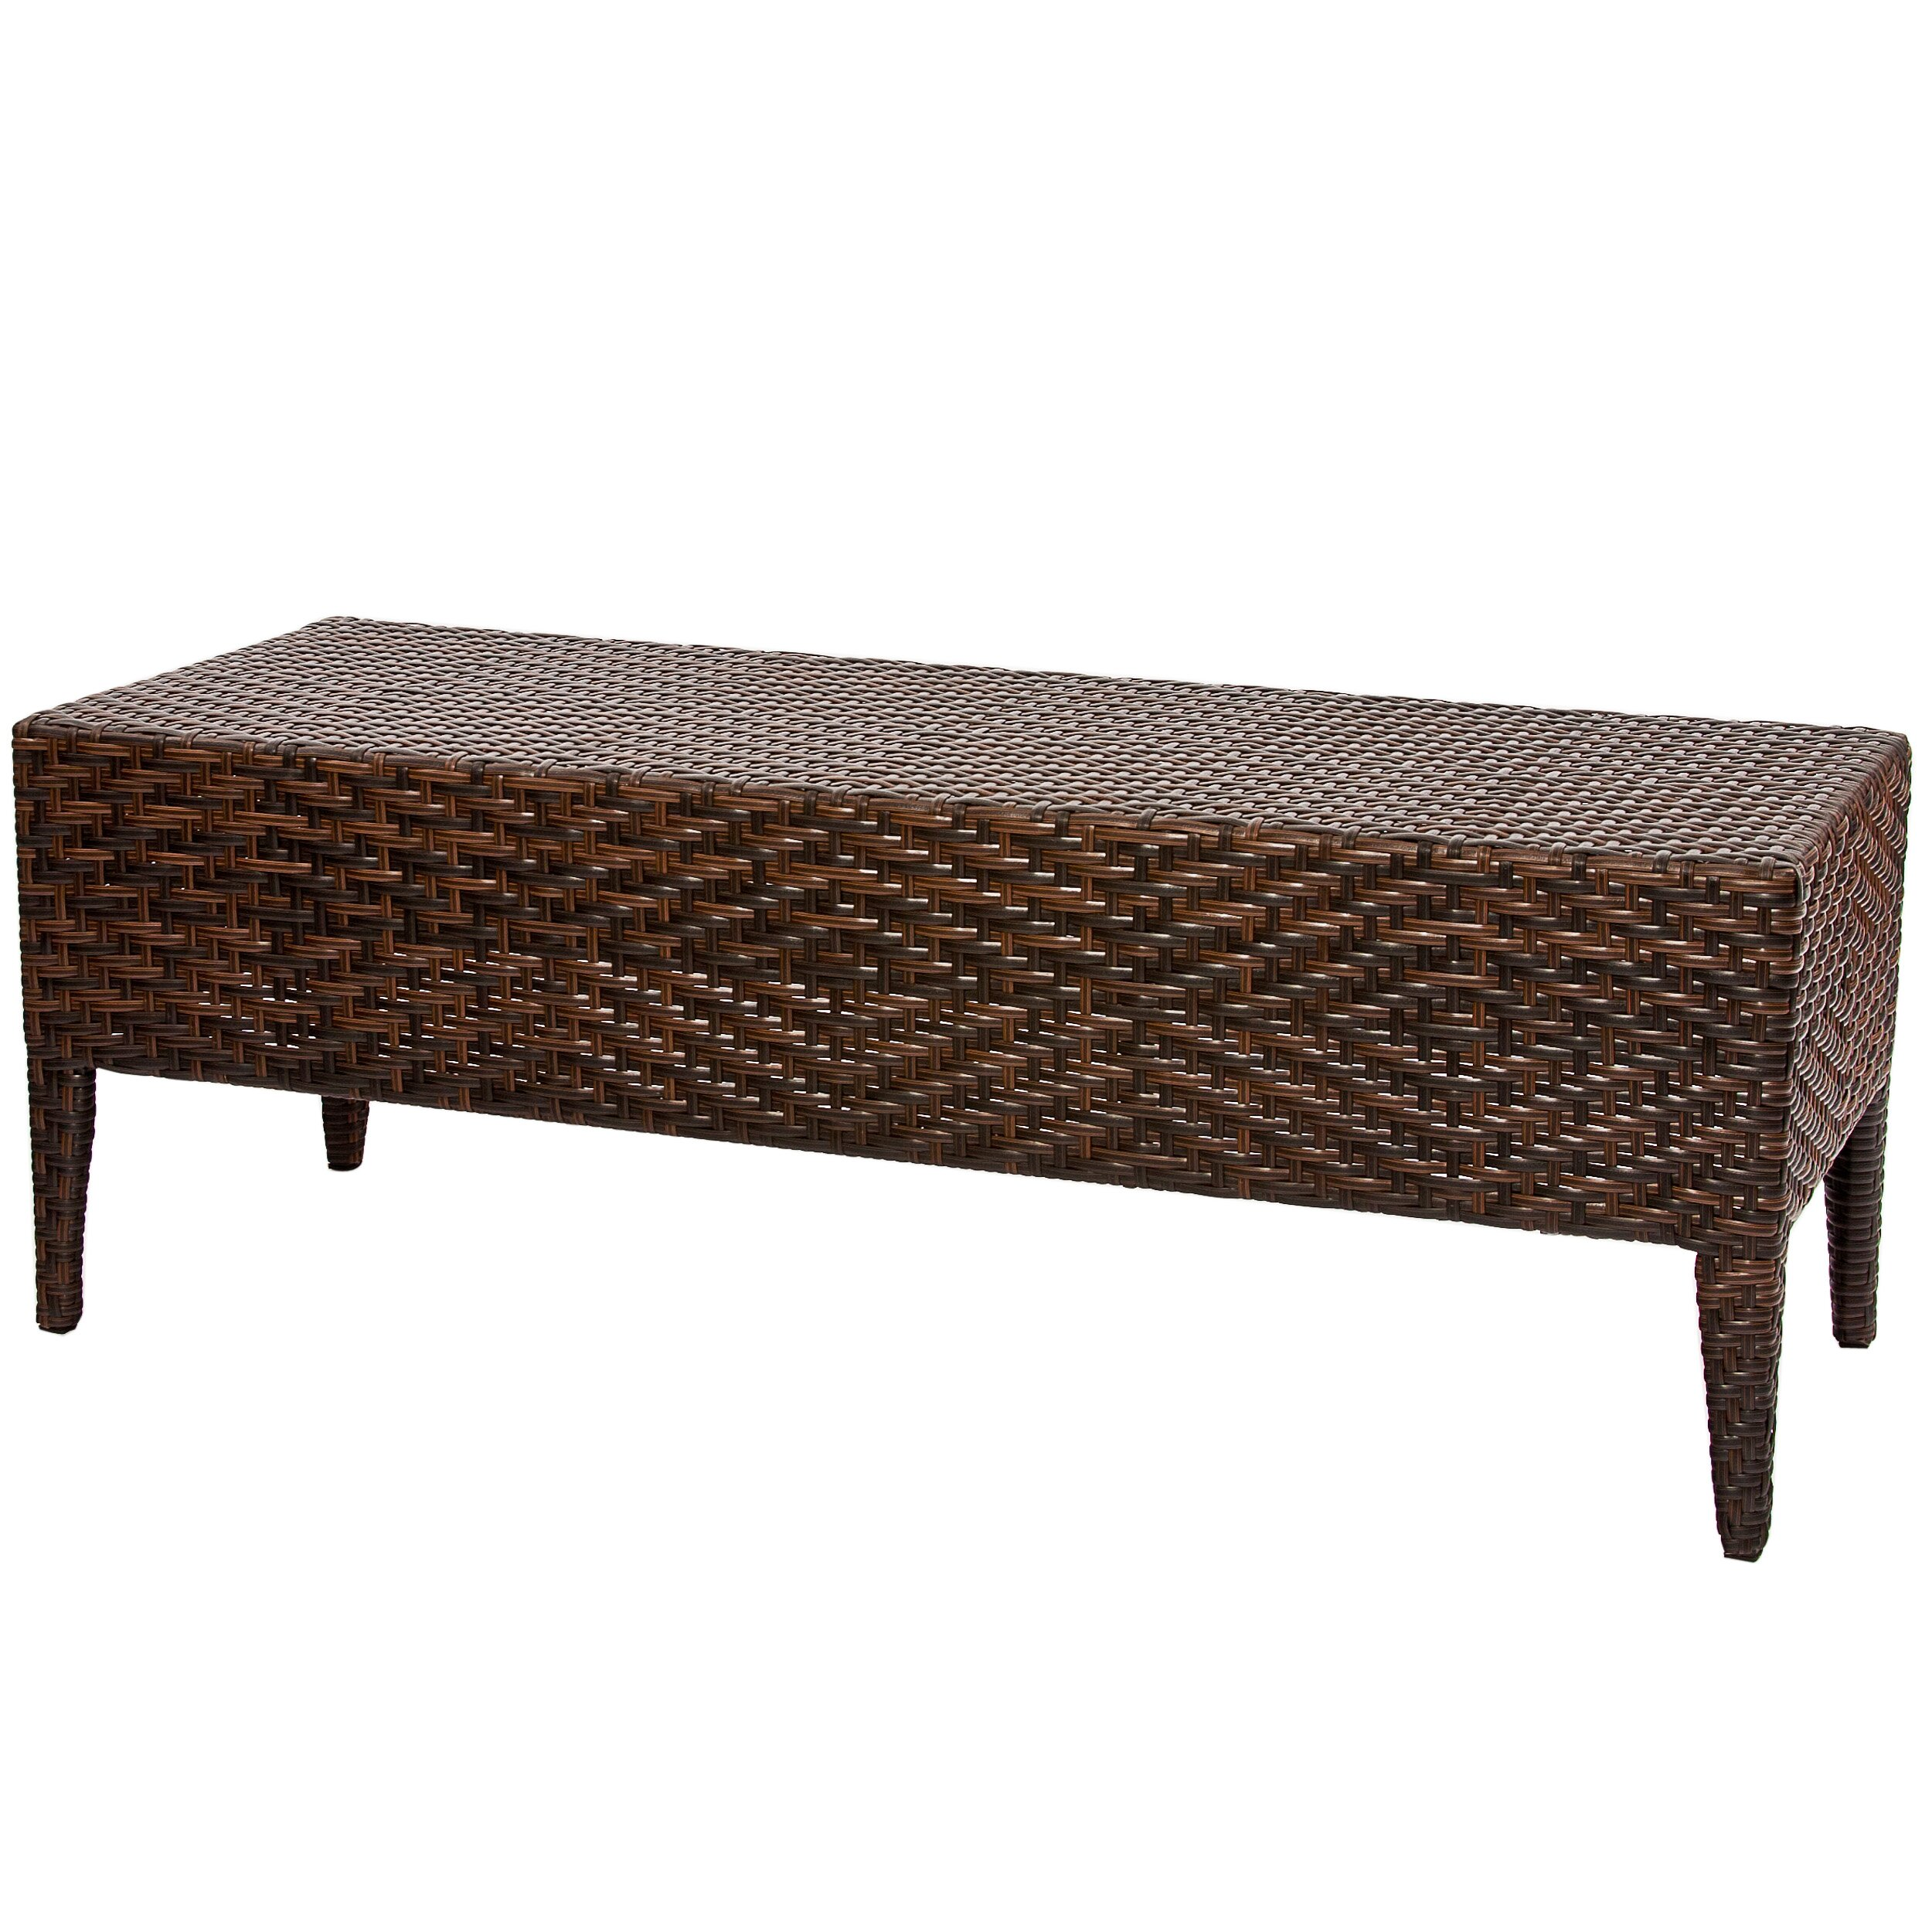 Home Loft Concepts Hobbes Wicker Garden Bench Reviews Wayfair